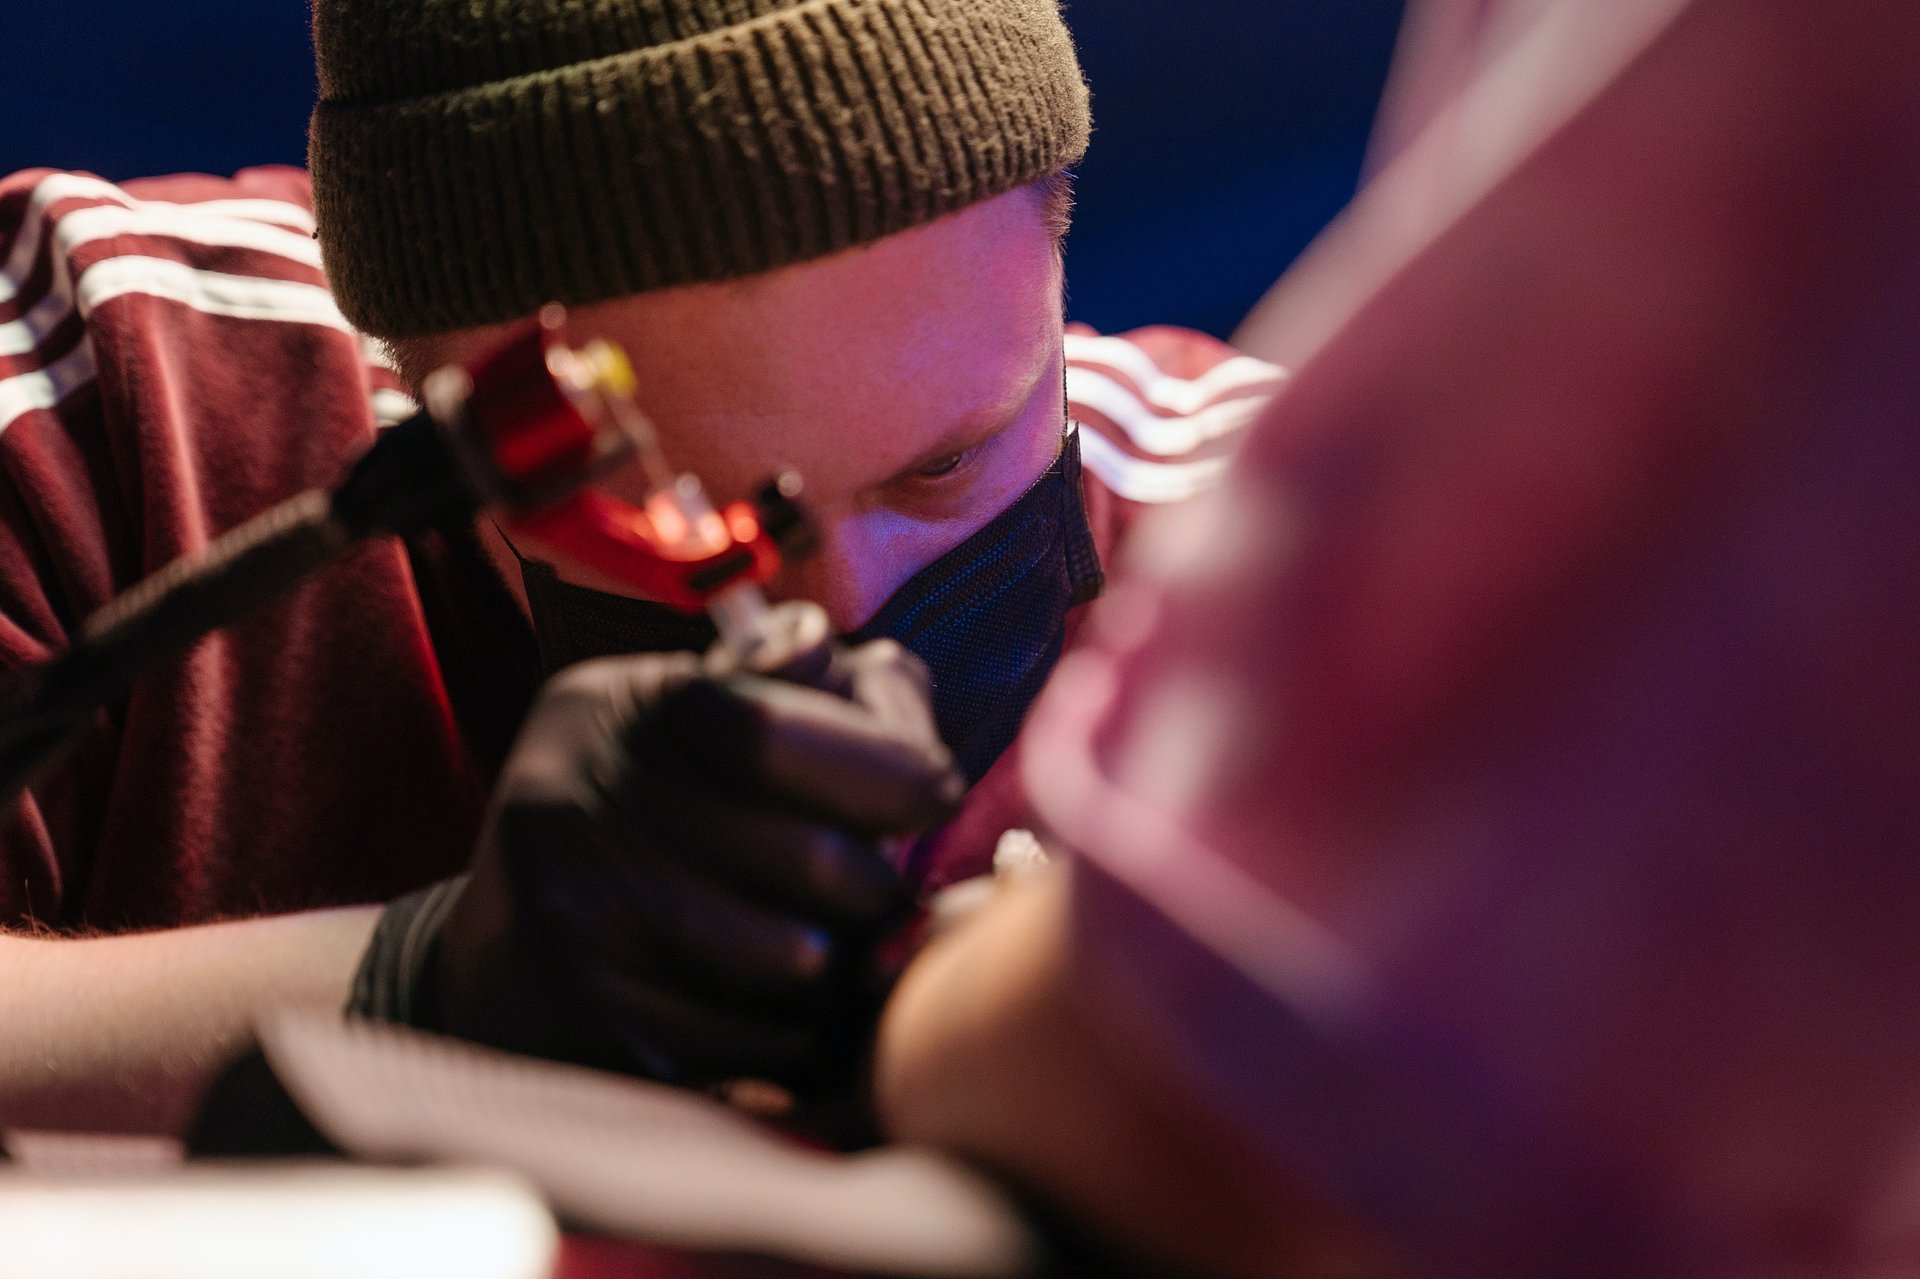 Tattoo Shops Can Overcome COVID-19 Changes